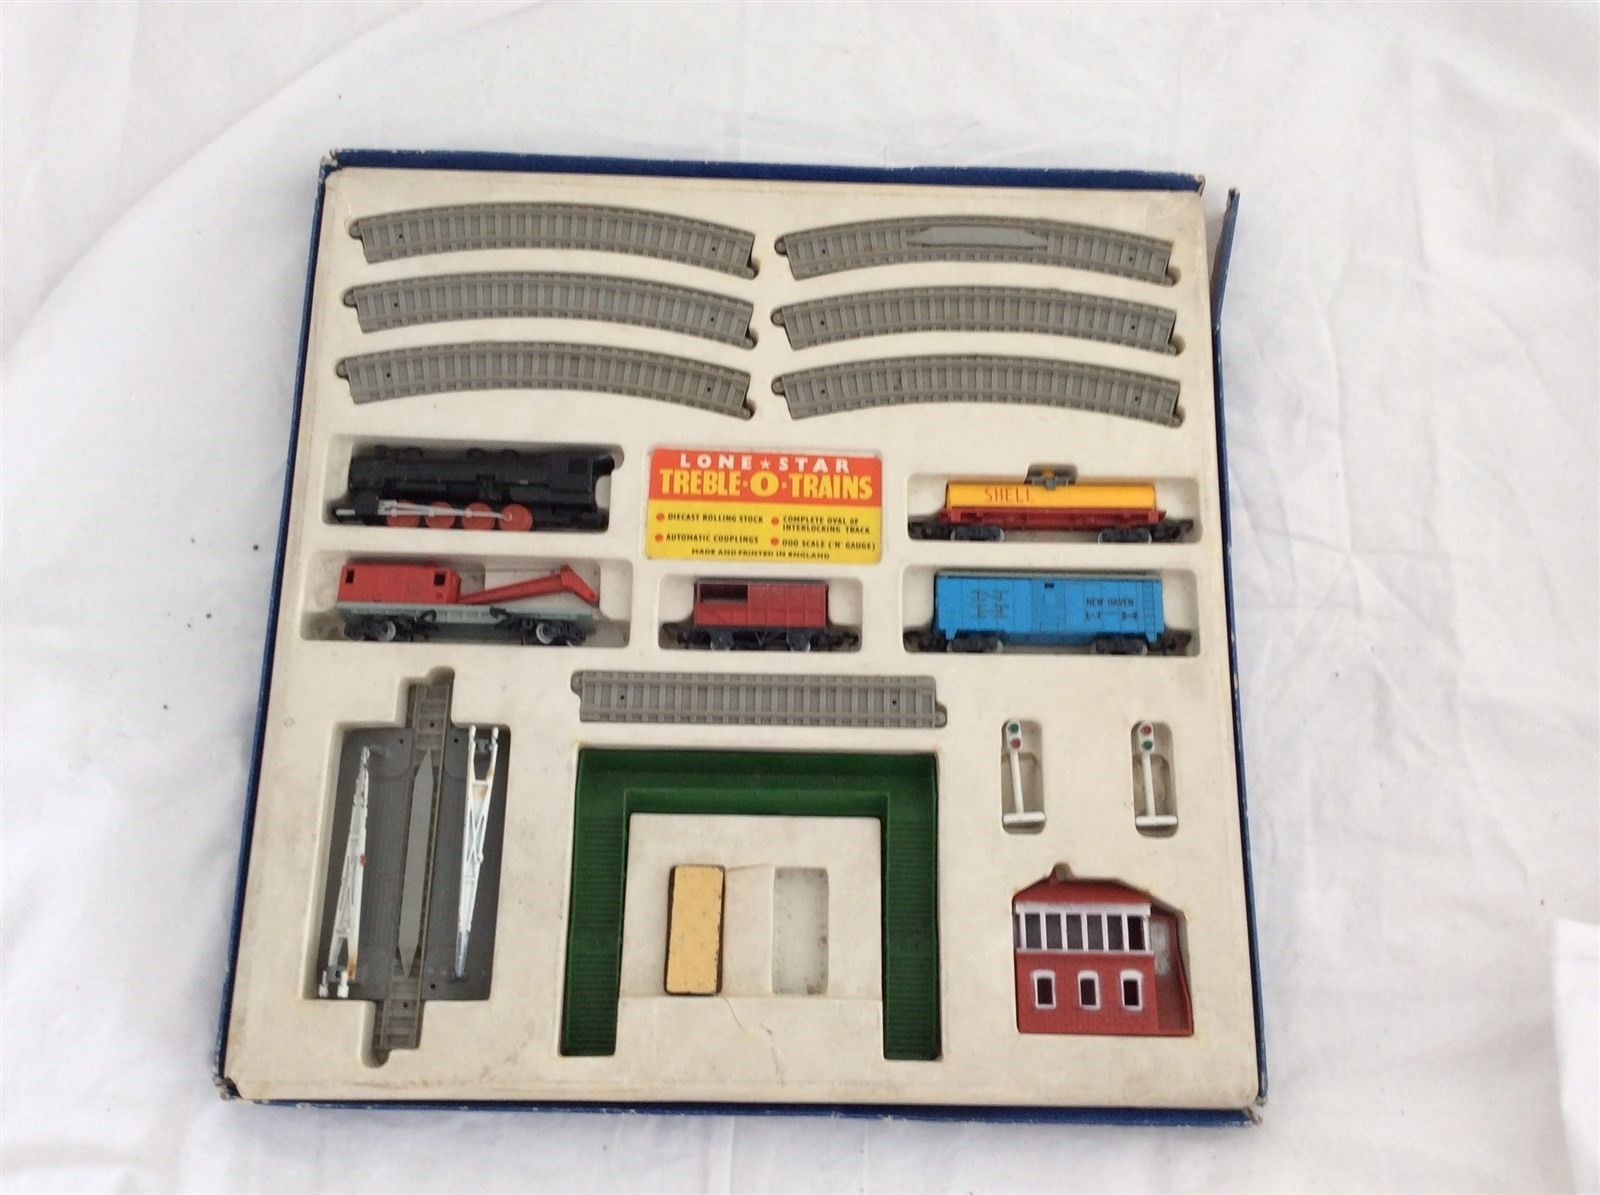 Lone star treble 0 #trains 000 n guage diecast #rolling stock #track set,  View more on the LINK: 	http://www.zeppy.io/product/gb/2/351800939690/